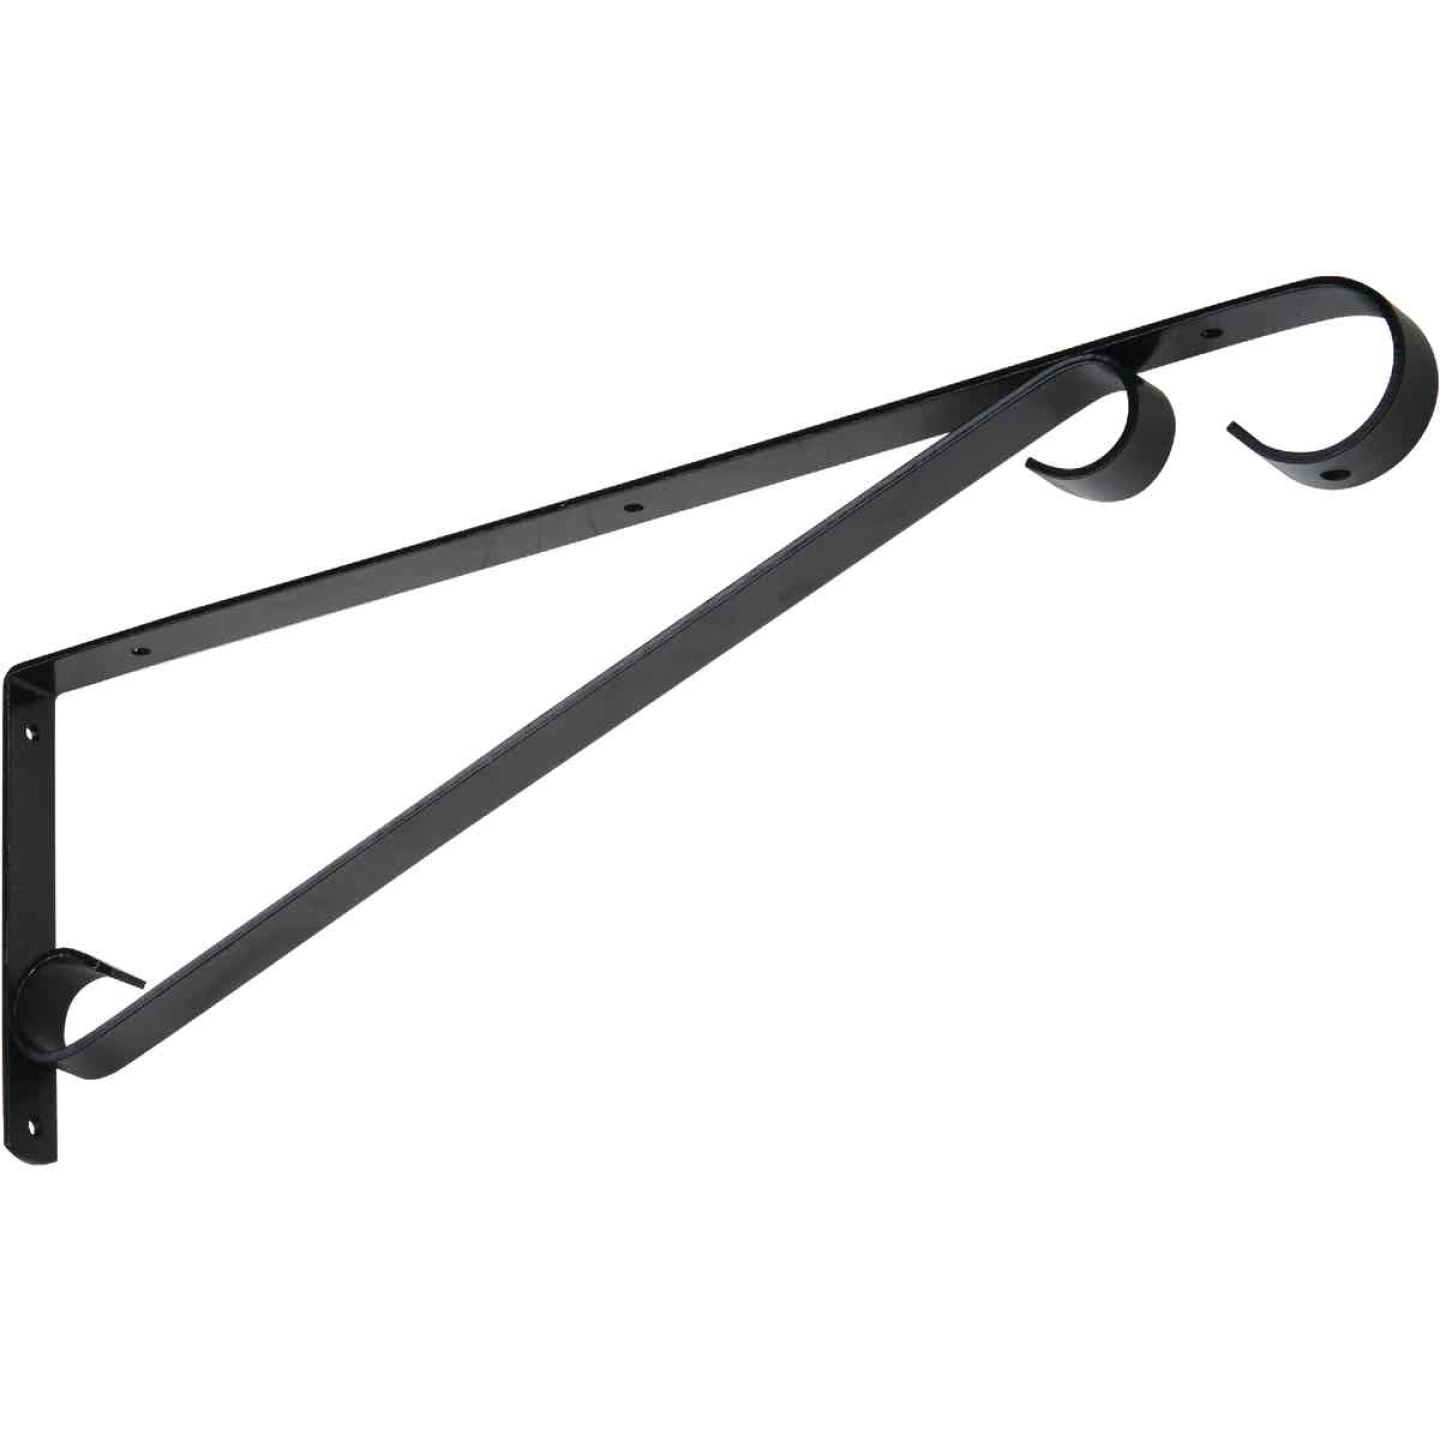 National 15 In. Black Steel Hanging Plant Bracket Image 1